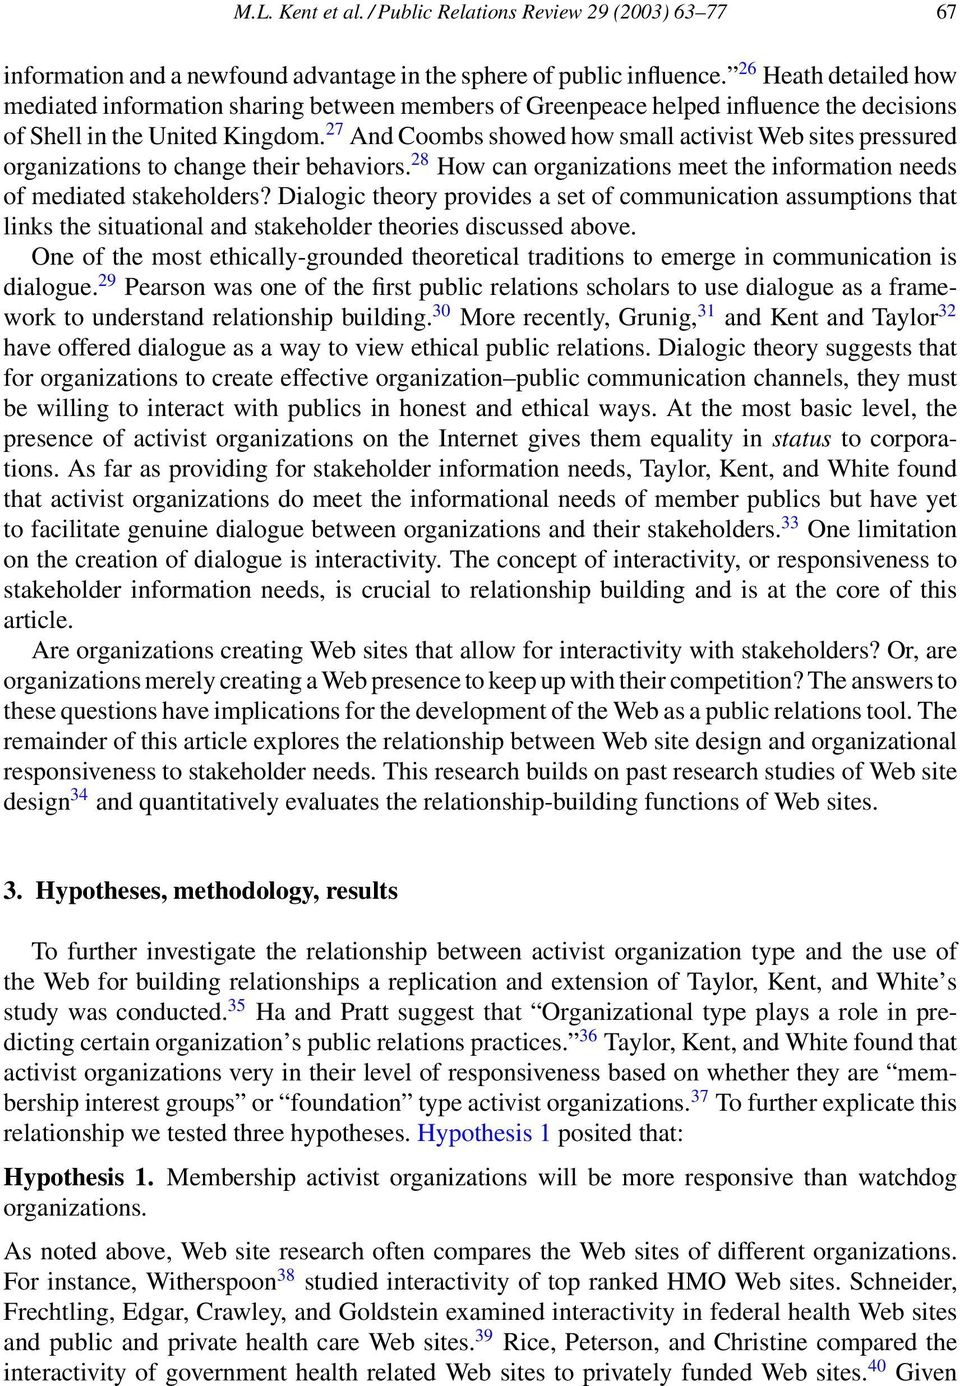 27 And Coombs showed how small activist Web sites pressured organizations to change their behaviors. 28 How can organizations meet the information needs of mediated stakeholders?